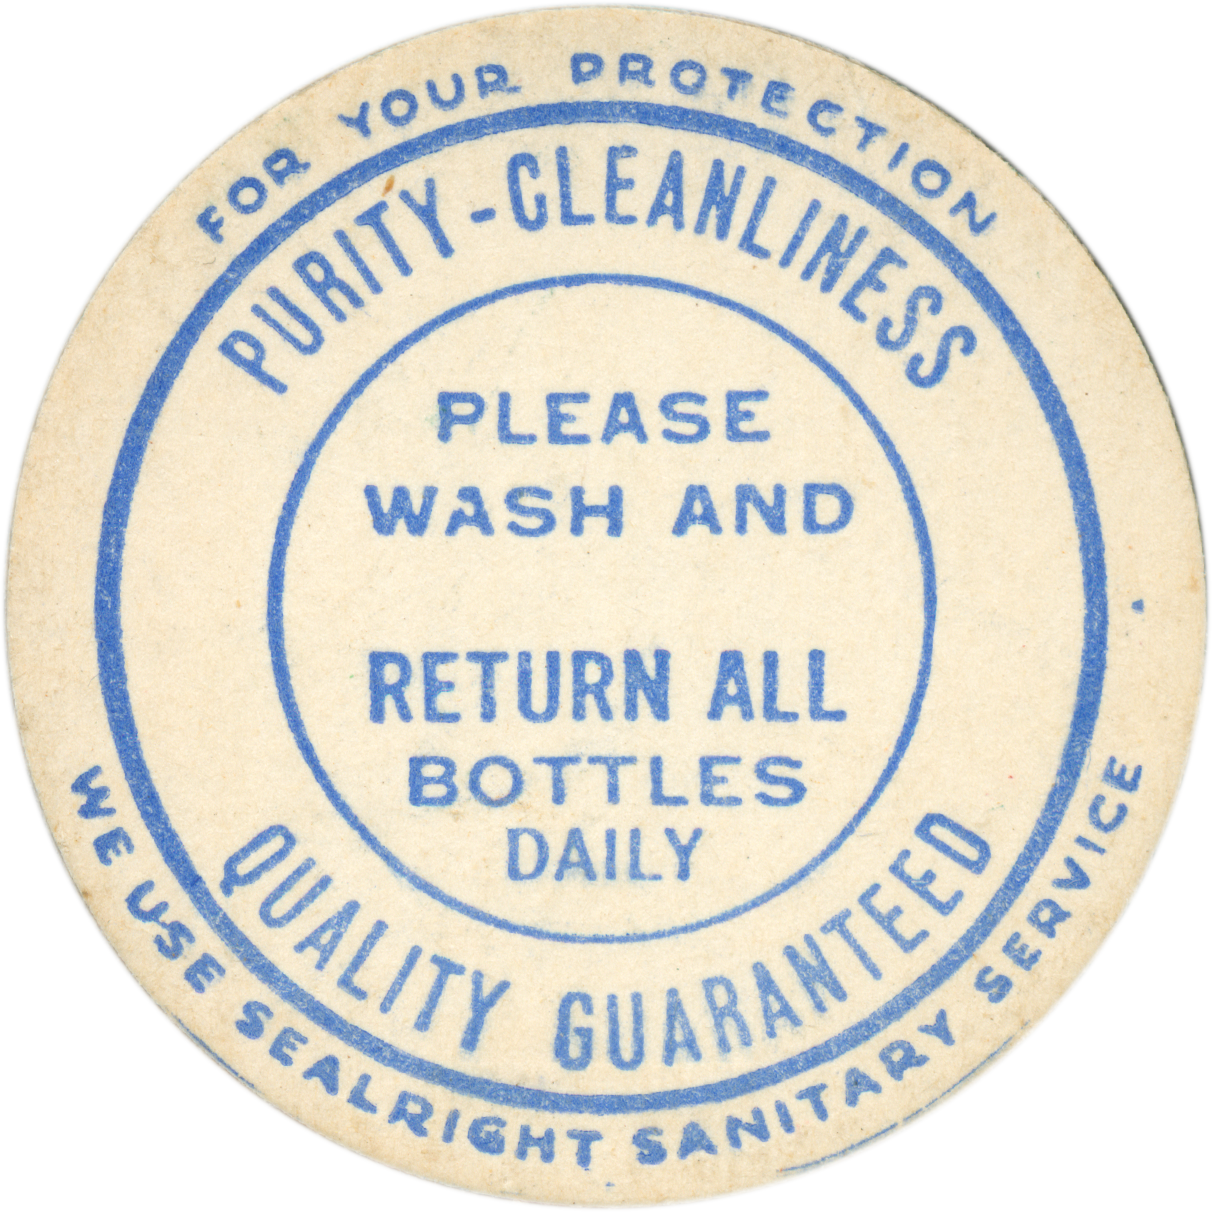 VernacularCircles__0001s_0011_Purity-Cleanliness.png